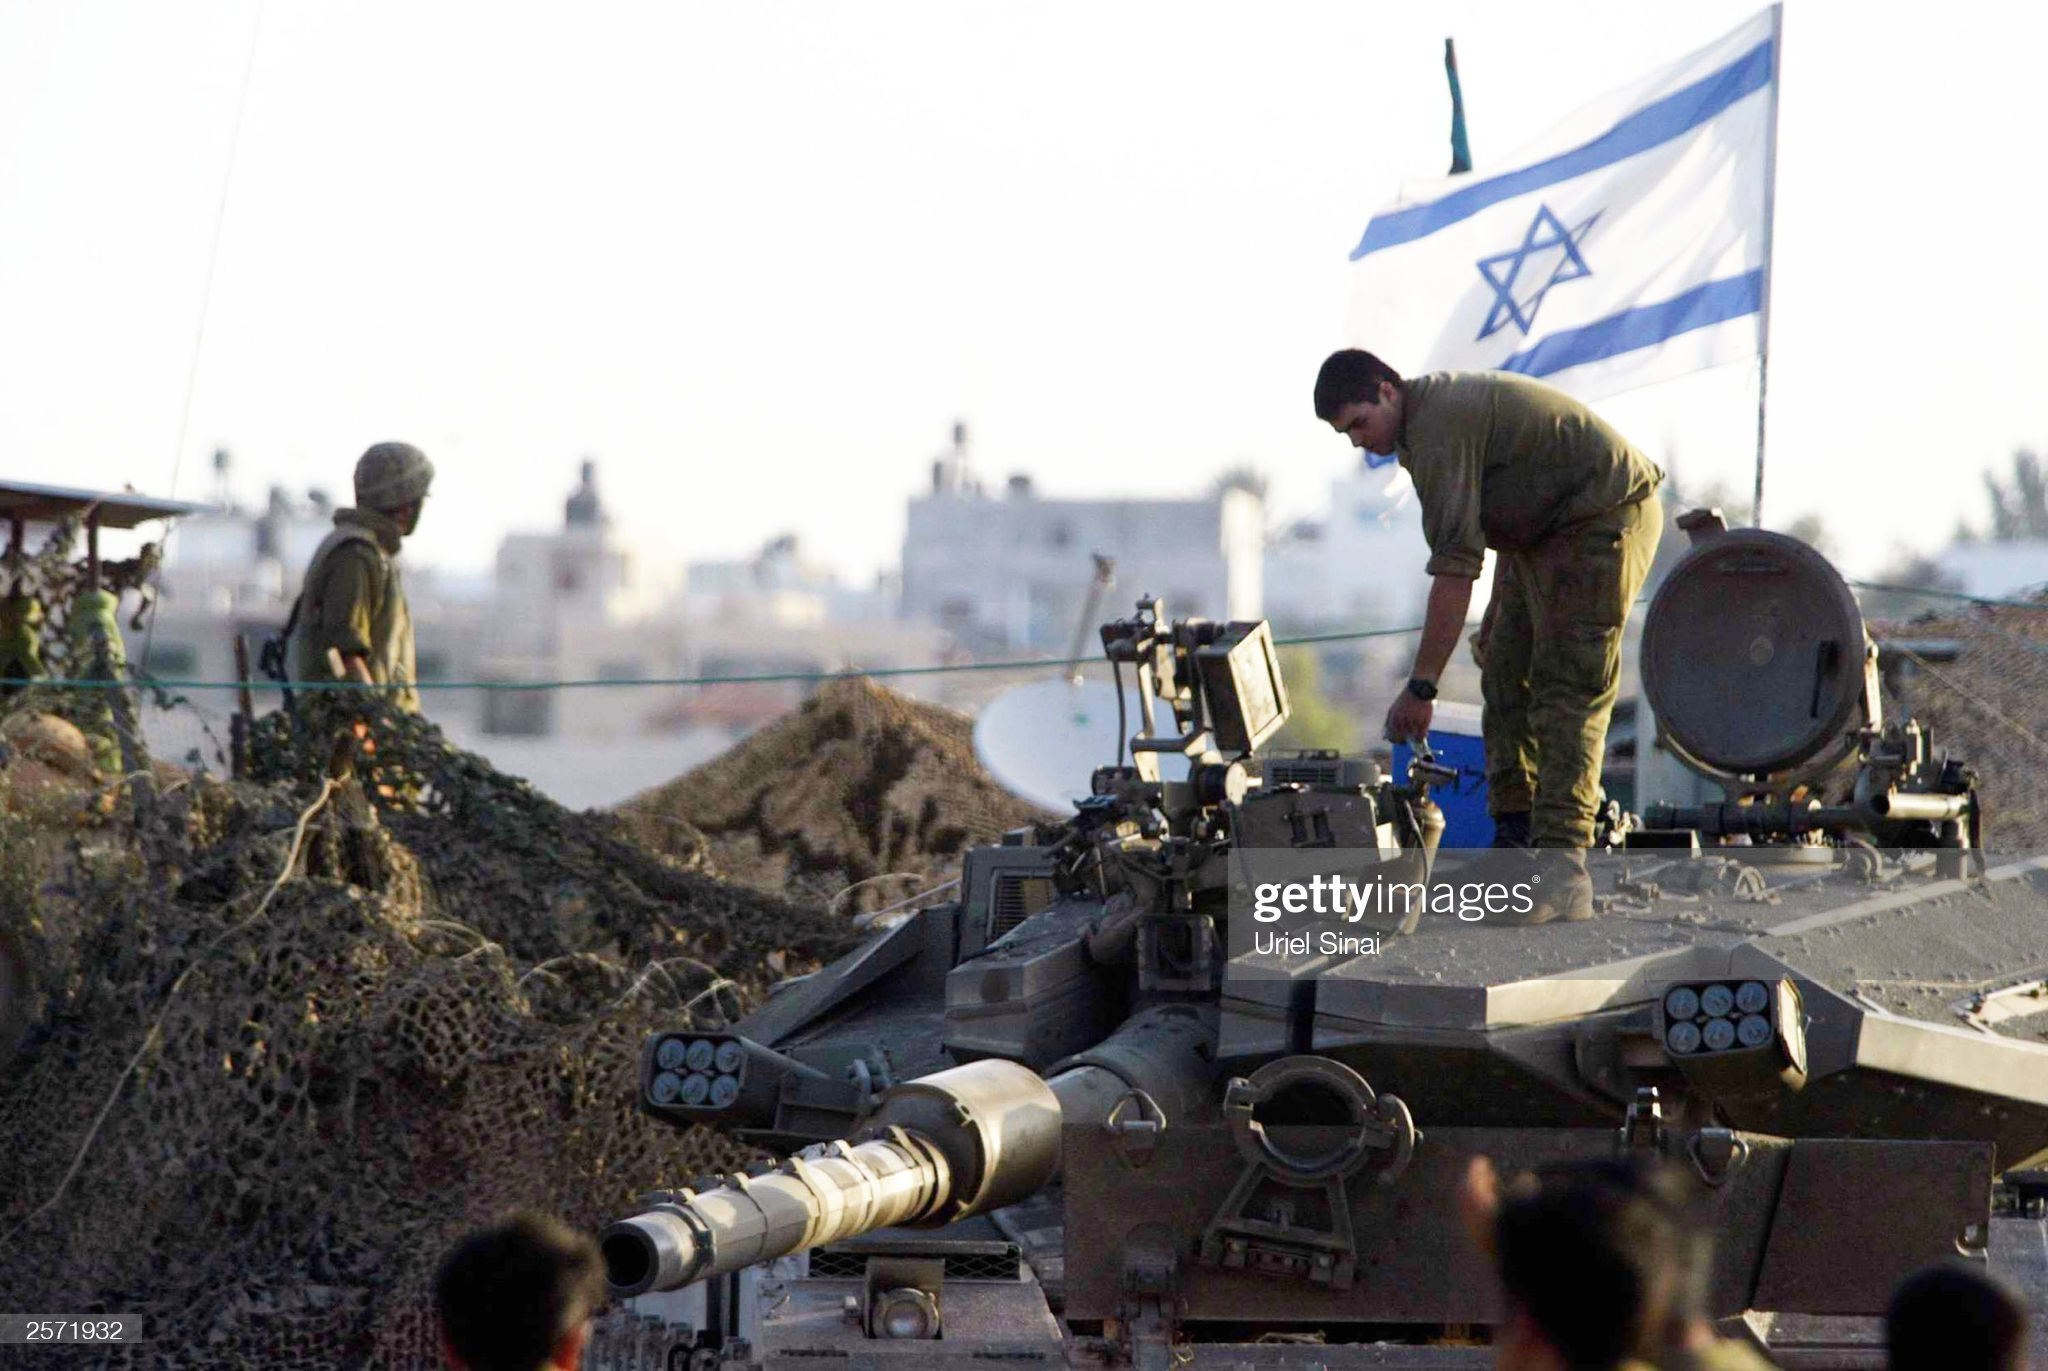 https://media.gettyimages.com/photos/an-israeli-soldier-stands-on-top-of-a-tank-october-8-2003-in-an-next-picture-id2571932?s=2048x2048